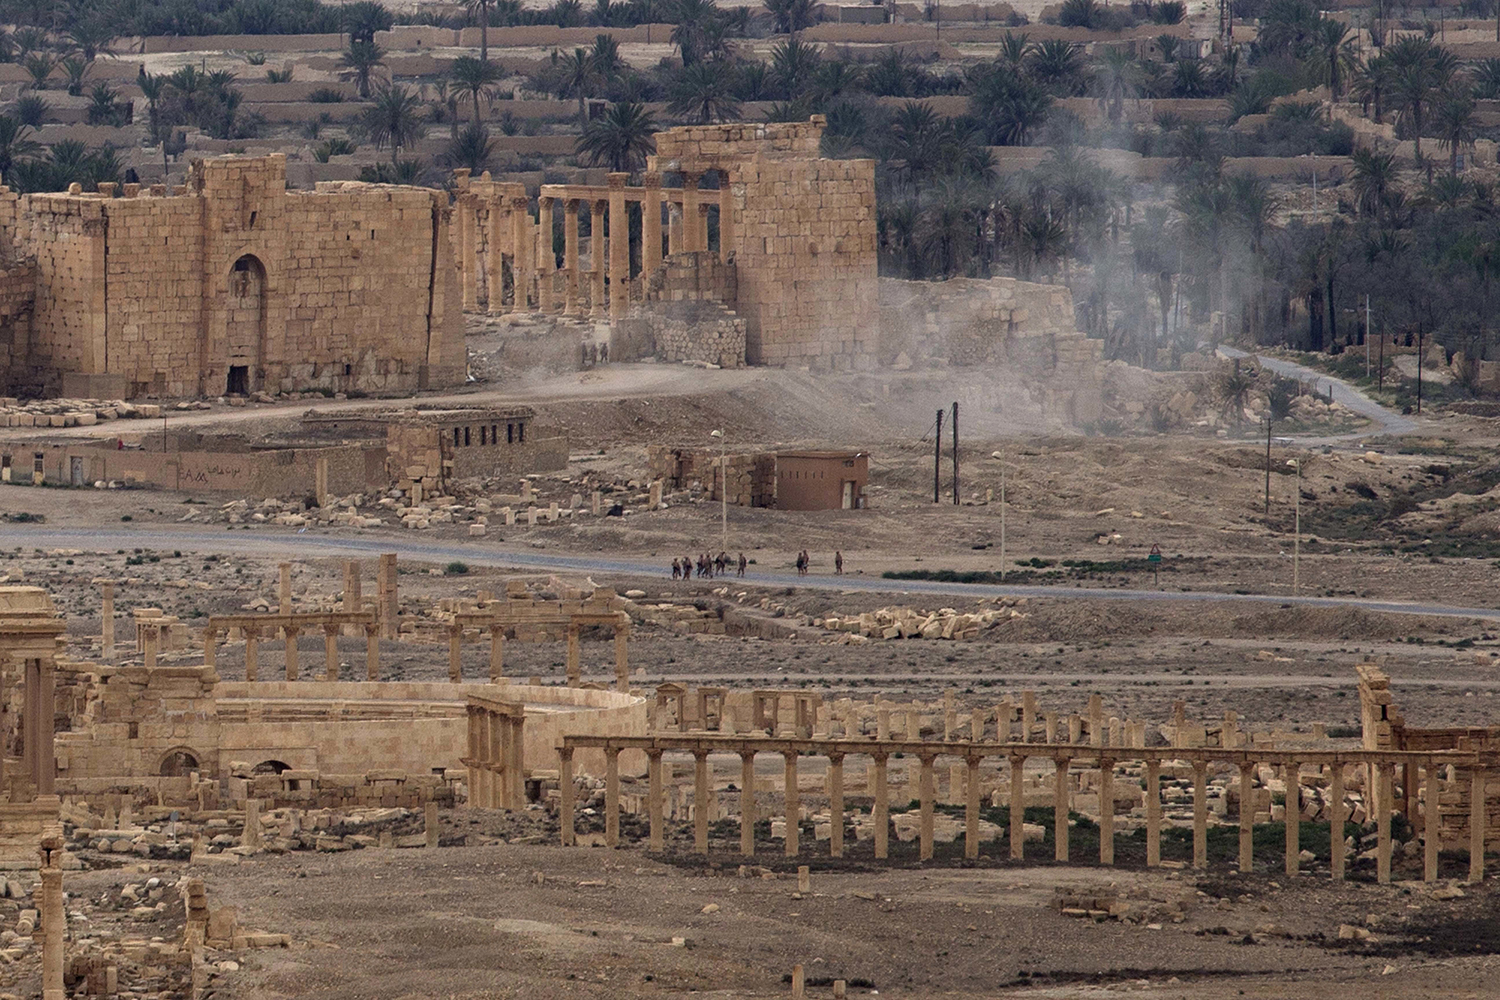 FILE -- In this April 14, 2016 file photo, Russian soldiers stand on a road as smoke rises from a controlled land mine detonation by Russian experts inside the ancient town of Palmyra, Syria in the central Homs province. Palmyra, the archaeological gem that Islamic State fighters retook Sunday, Dec. 11, 2016, from Syrian troops, is a desert oasis surrounded by palm trees, and a UNESCO world heritage site, that boasts 2,000-year-old towering Roman-era colonnades and priceless artifacts. It is also a strategic crossroads linking the Syrian capital, Damascus, with the country's east and neighboring Iraq. (AP Photo/Hassan Ammar, File)